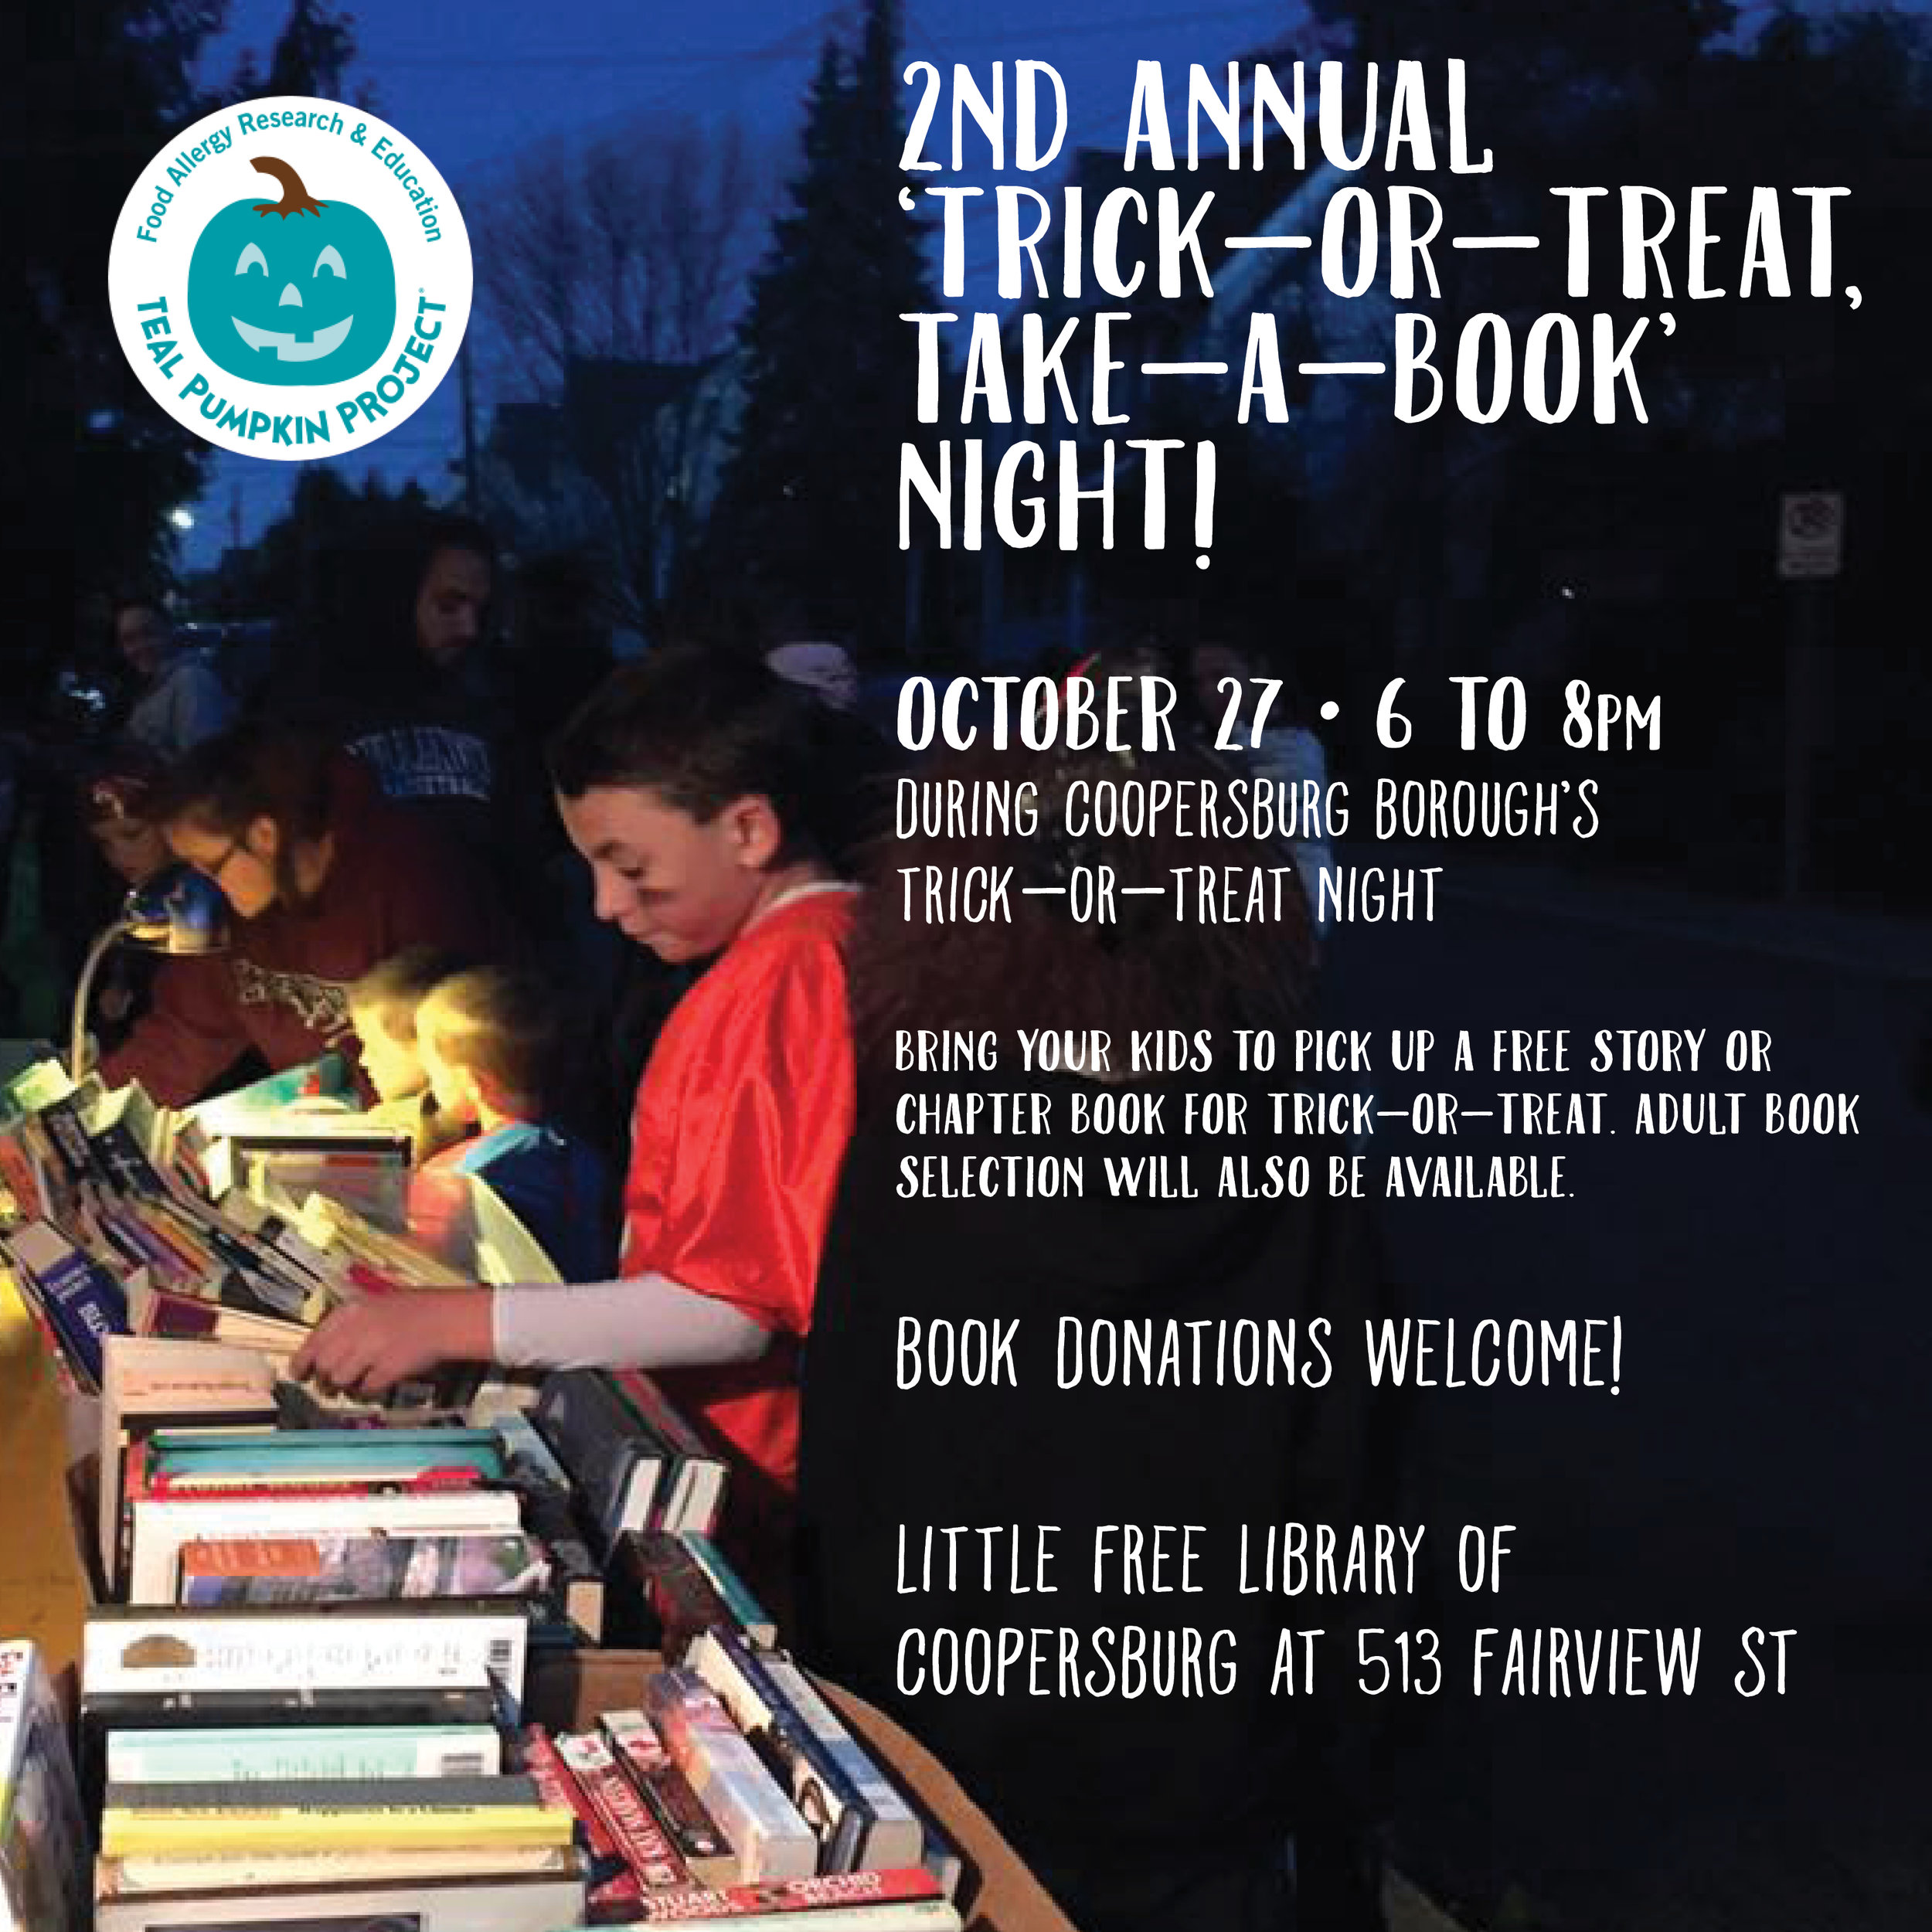 2nd ANNUAL 'TRICK-OR- TREAT, TAKE- A- BOOK NIGHT  Gave away over 250  childrens'  books in under two hours.